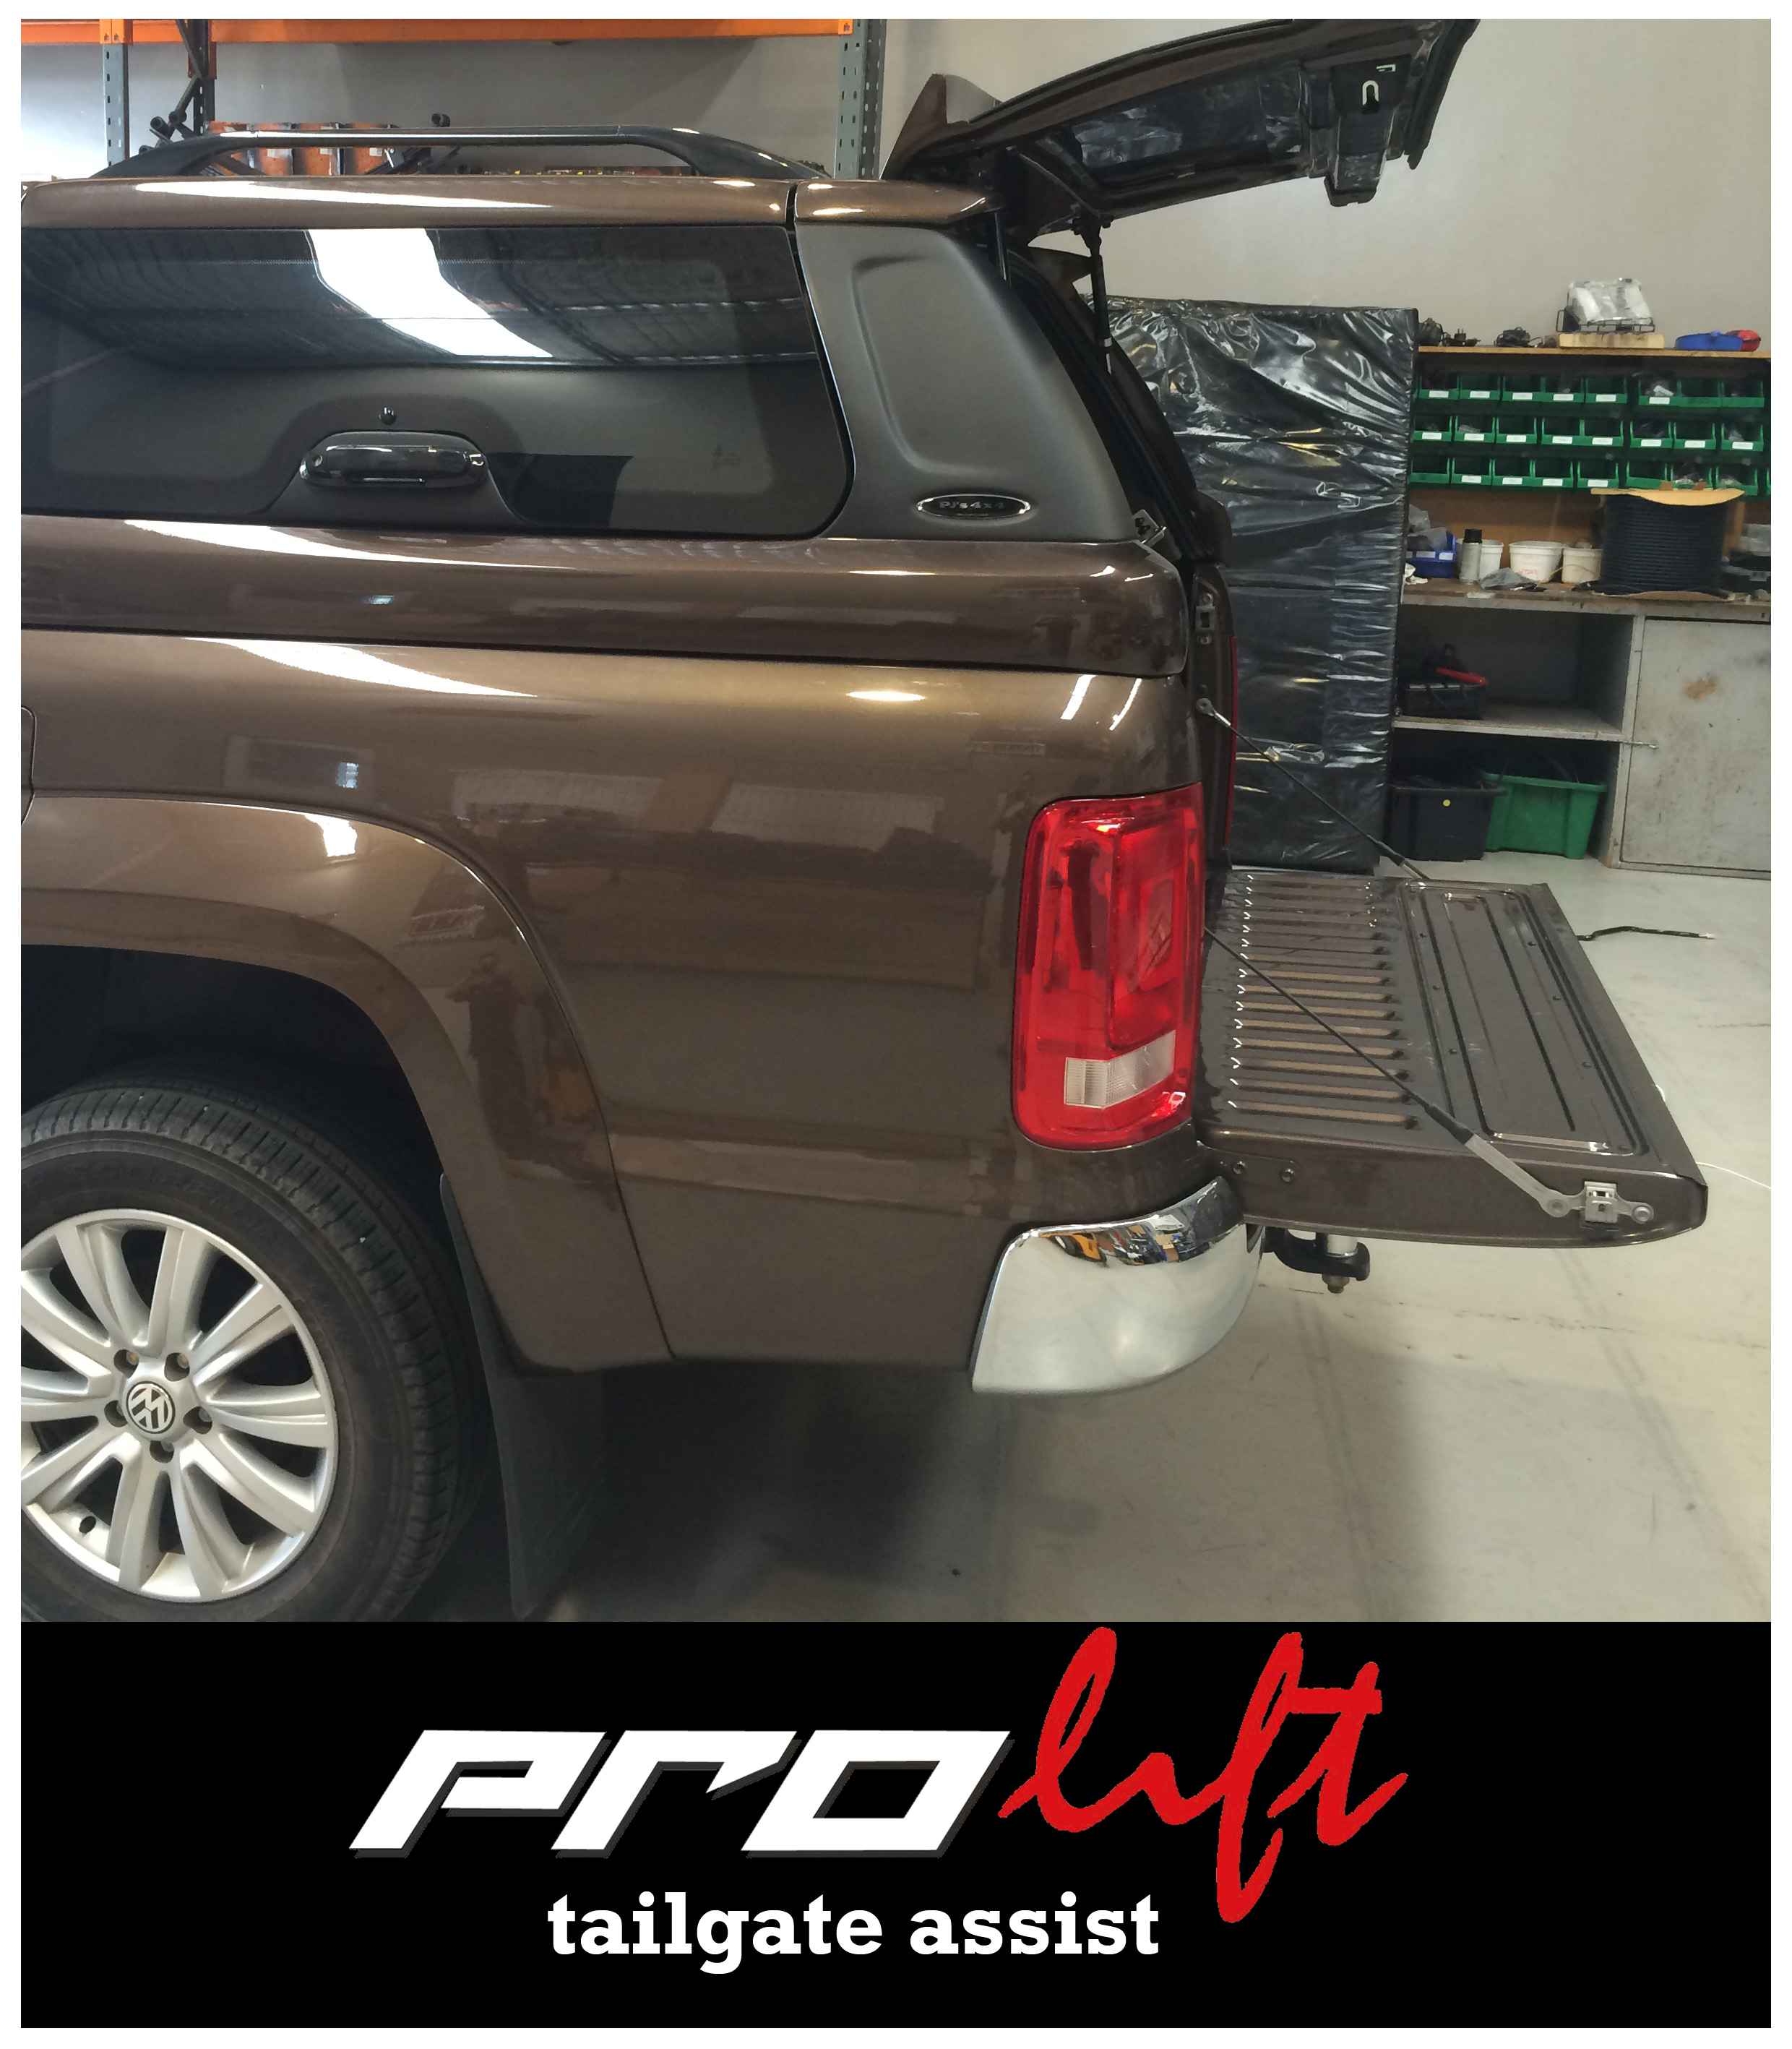 WEbsite_Amarok_PROLIFT_Thumbnail_edited-1.jpg